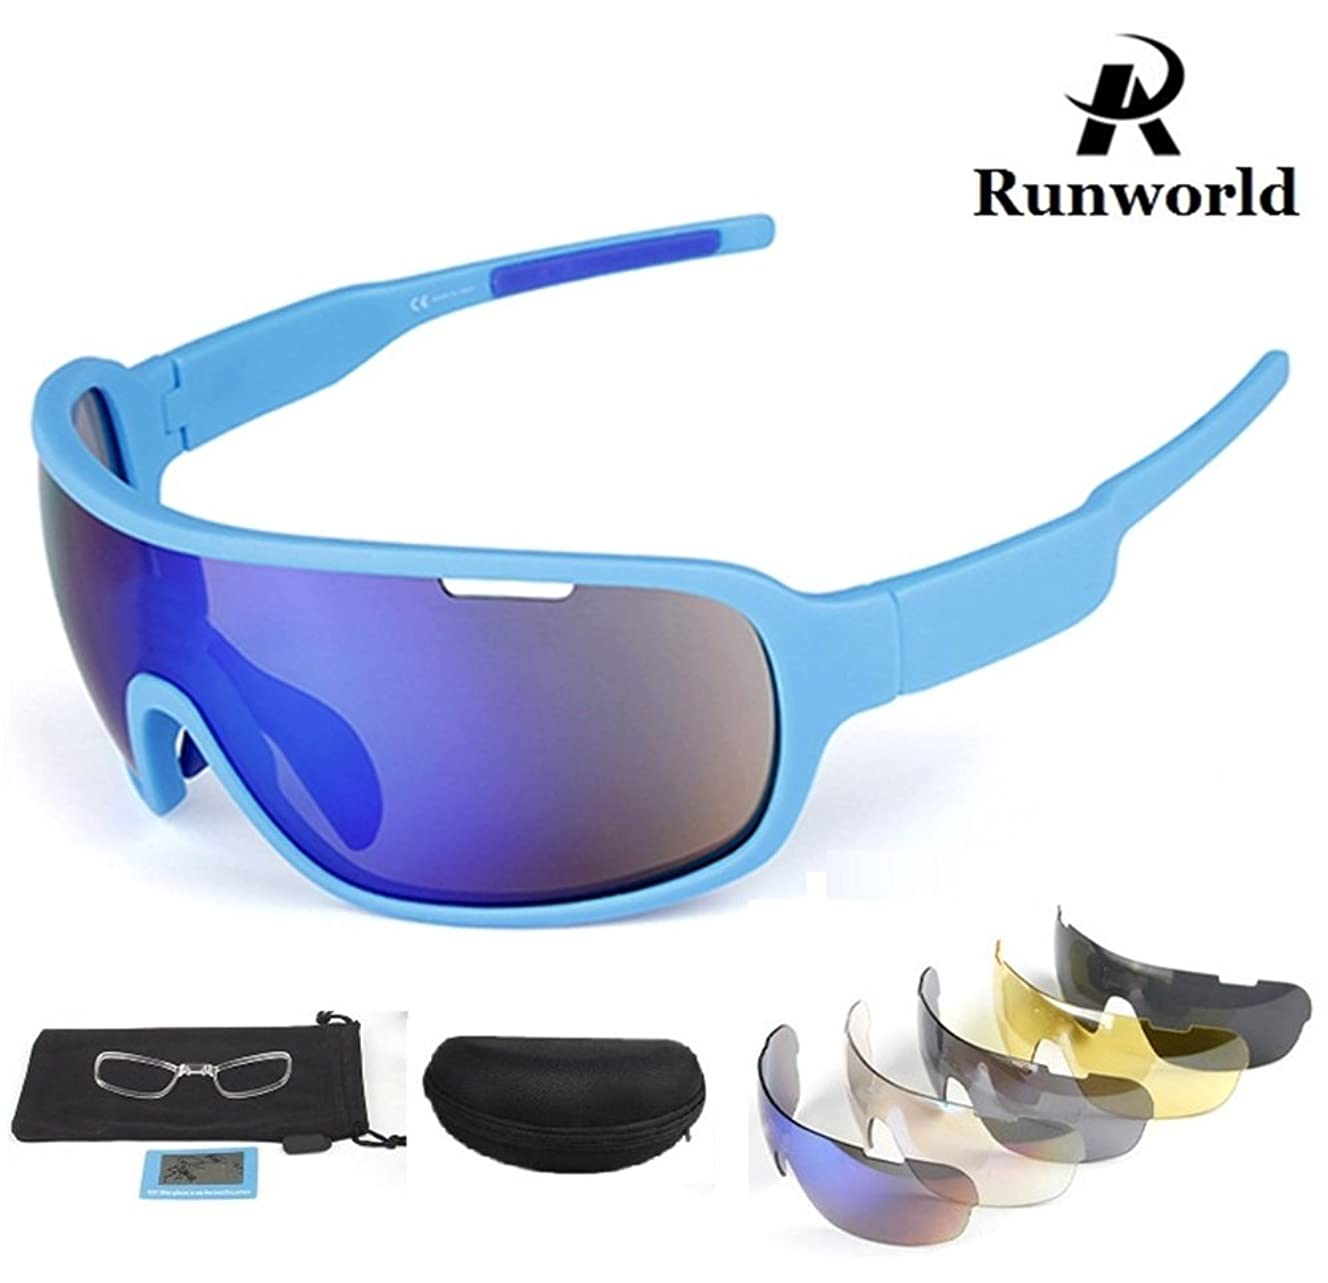 Runworld Sports Sunglasses for Men Women with 5 Interchangeable Lenses Outdoor Sport MTB Cycling Running Driving Baseball Glasses Eyewear UV Protection